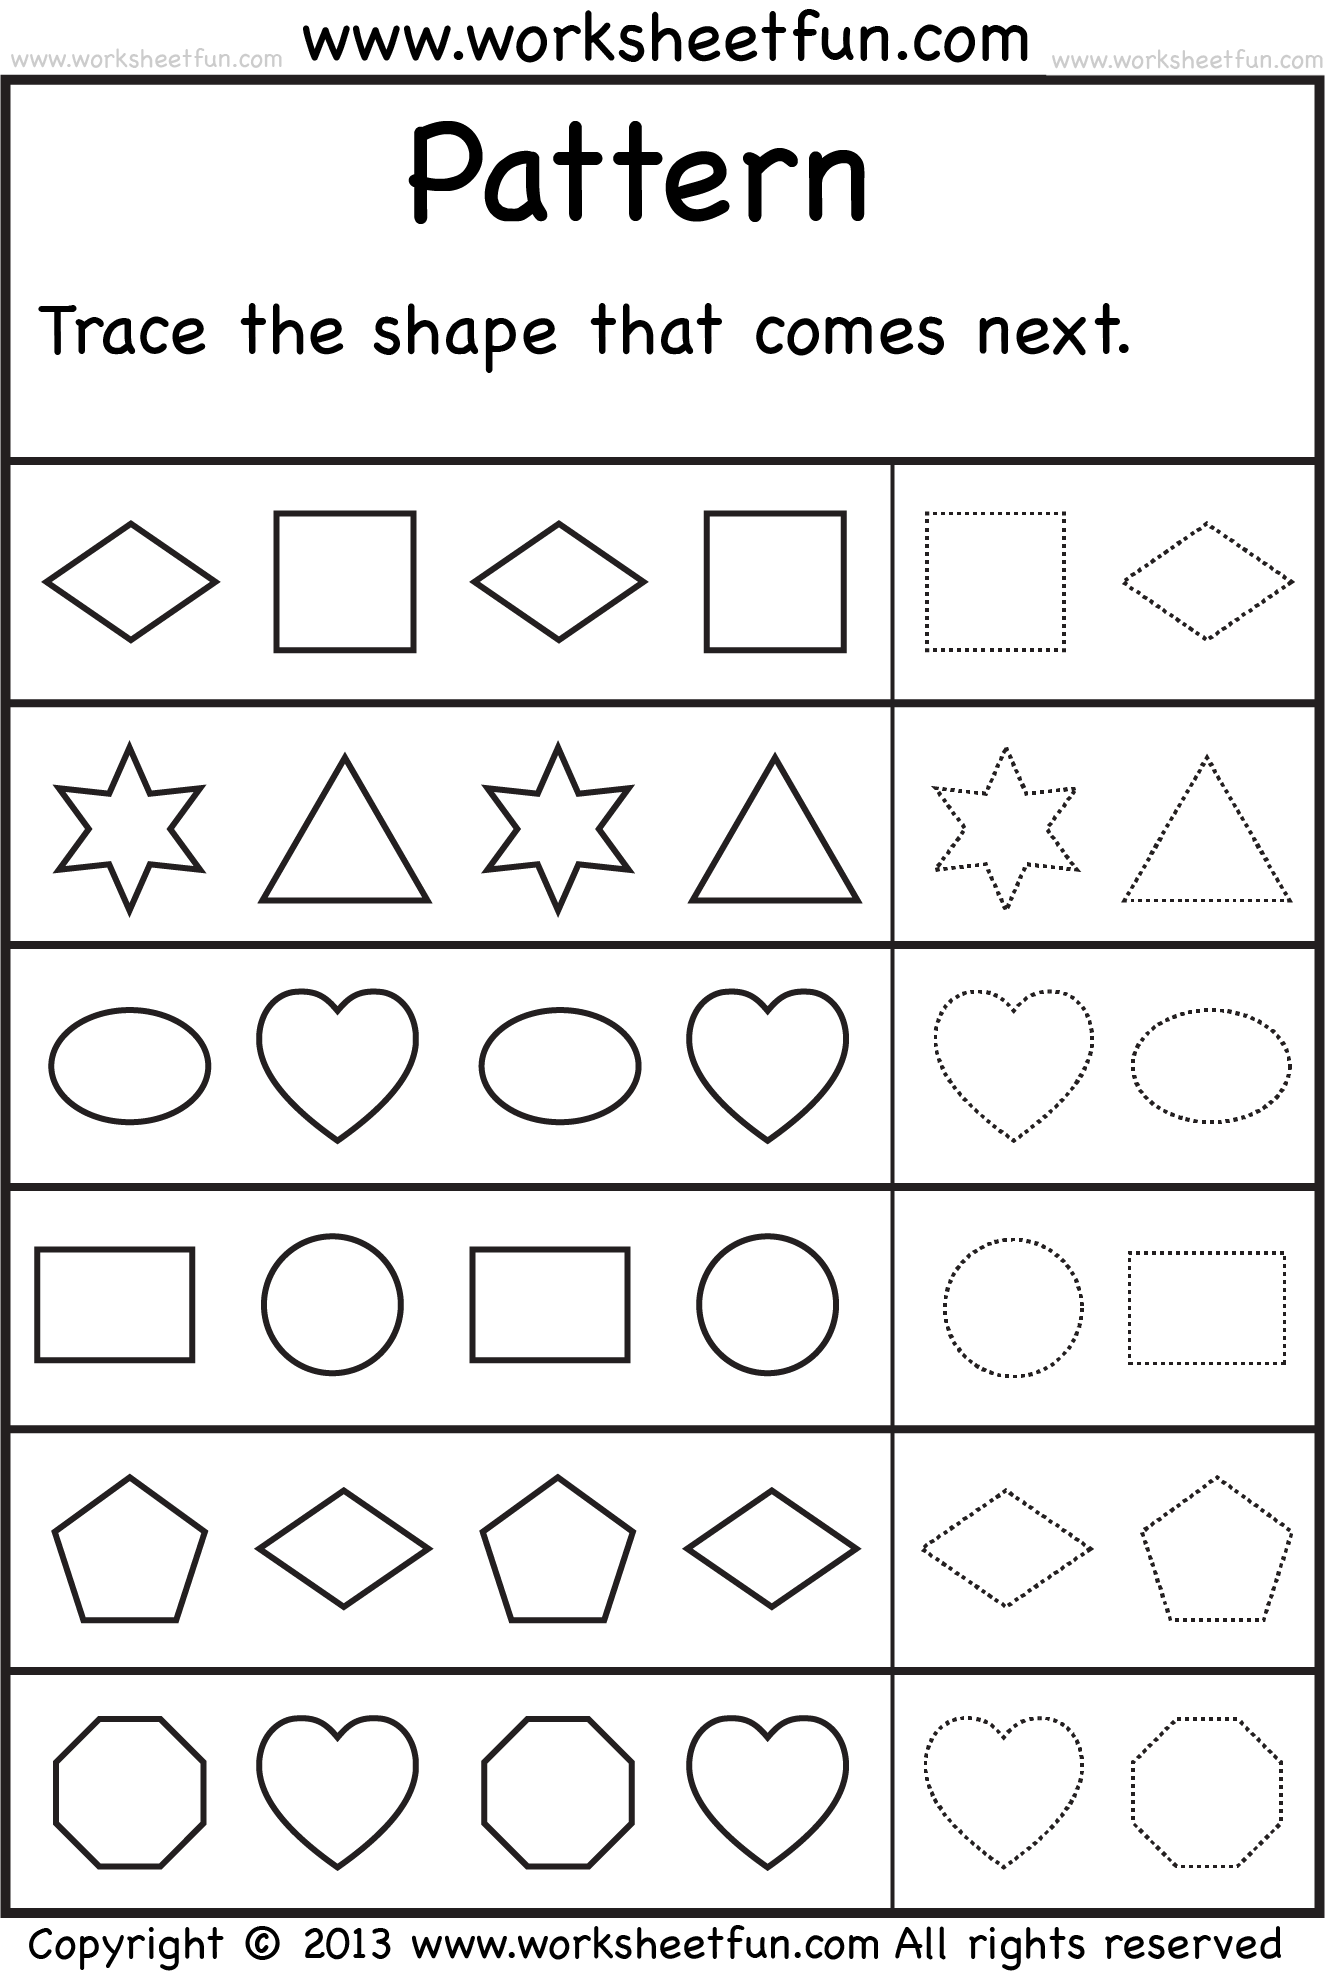 Patterns Trace The Shape That Comes Next One Worksheet Free Printable Worksheets